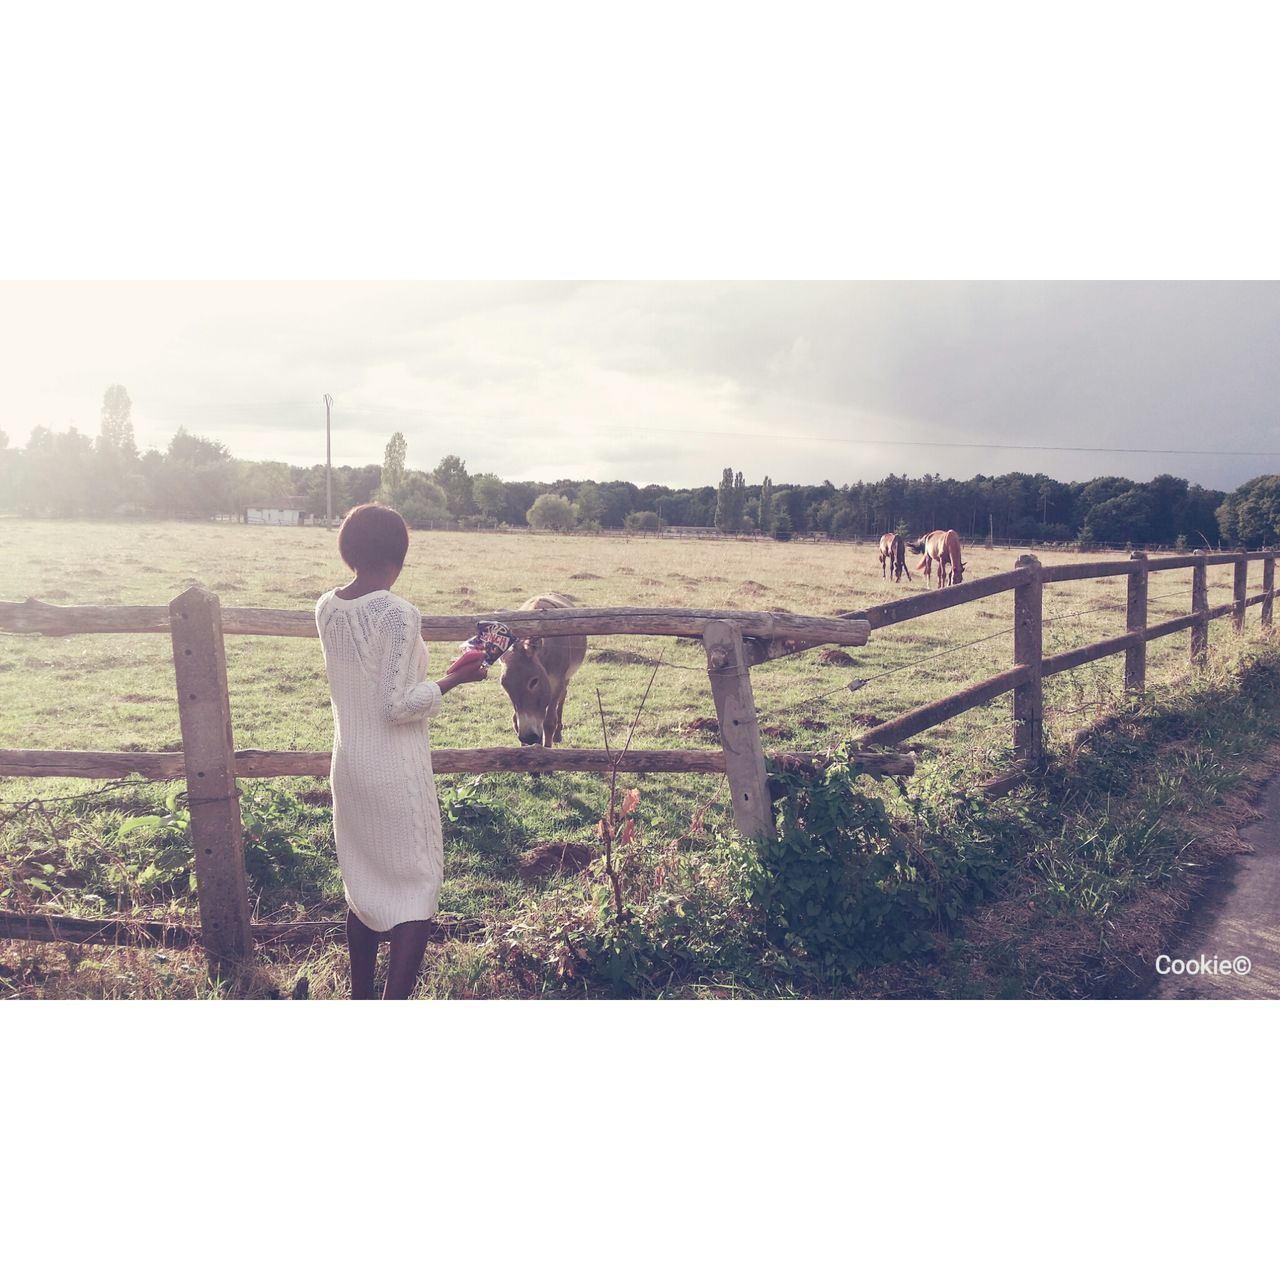 One Girl Only Sky Friendship One Person Outdoors Clear Sky Tranquil Scene Sunset Tranquility Beauty In Nature Horses Horse Life Day Nature Nature Photography Naturelover Country Life Country Girl Country Side Child Children Only Childhood Girls Full Length Rear View